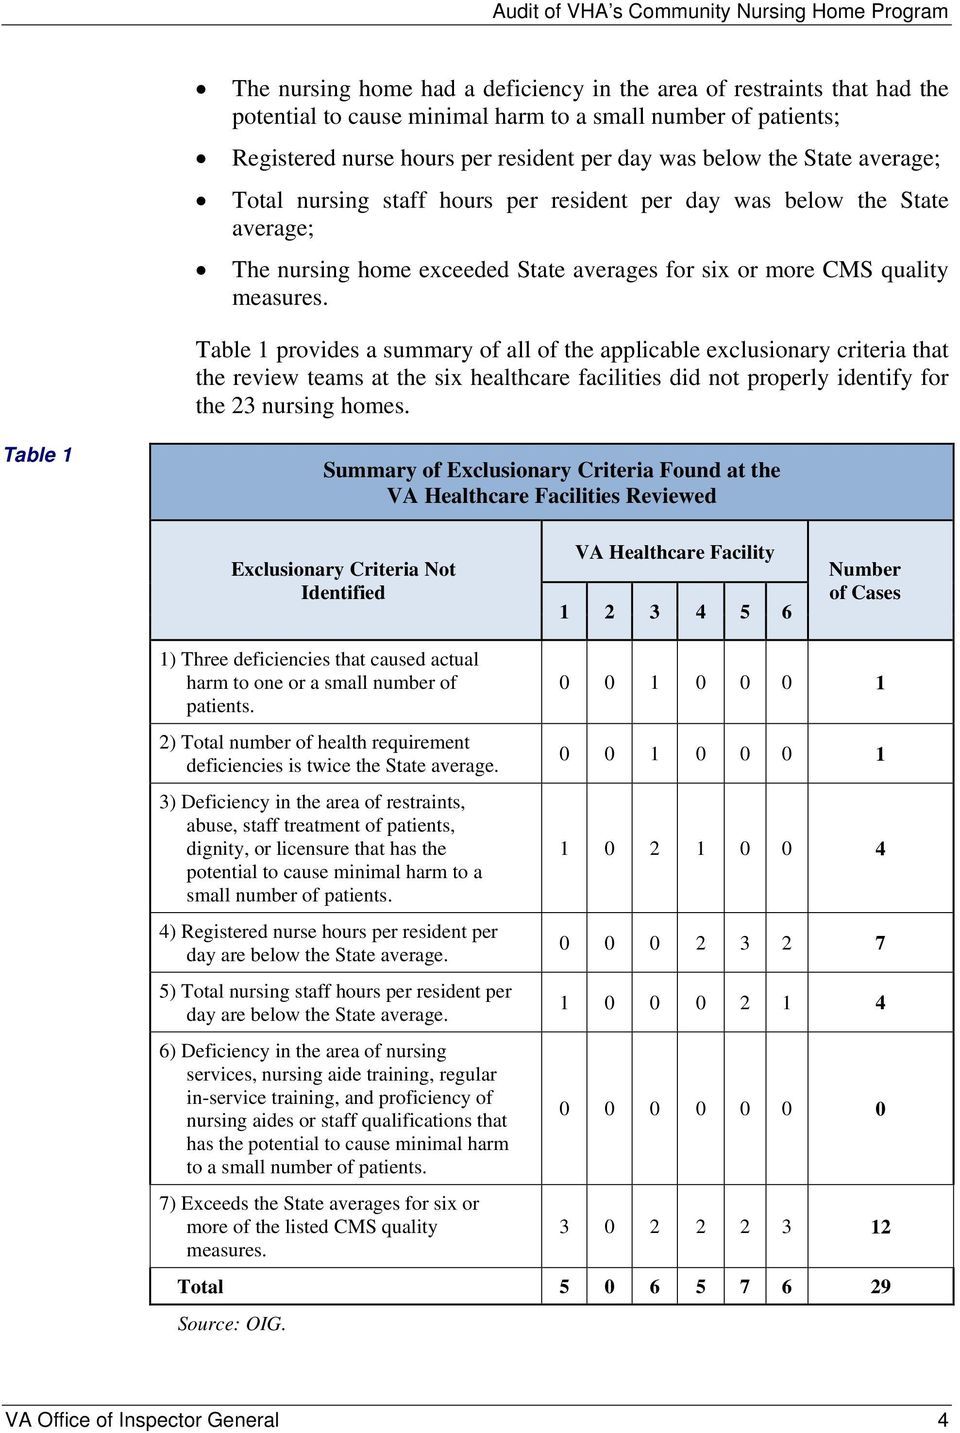 Table 1 provides a summary of all of the applicable exclusionary criteria that the review teams at the six healthcare facilities did not properly identify for the 23 nursing homes.